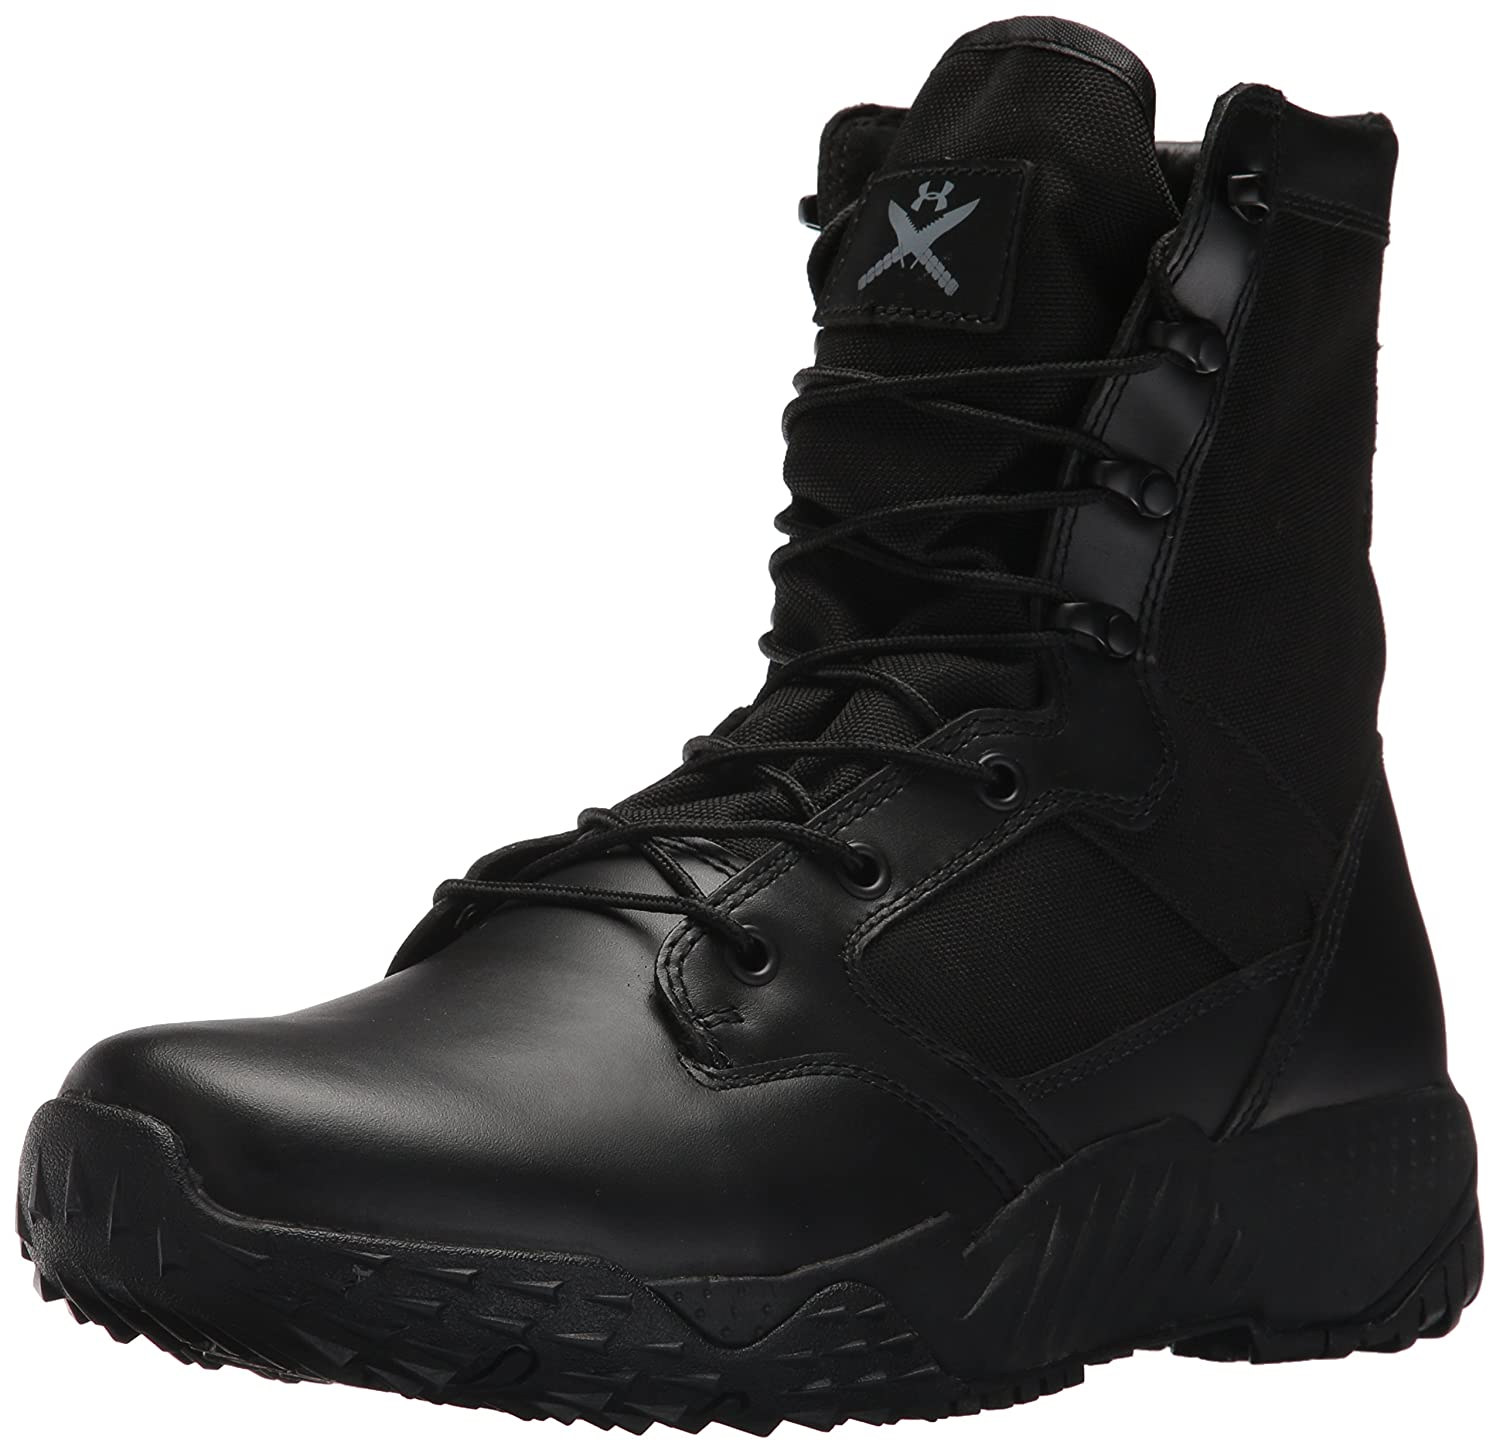 Under Armour UA Jungle Rat, Zapatos de Low Rise Senderismo para Hombre 1264770